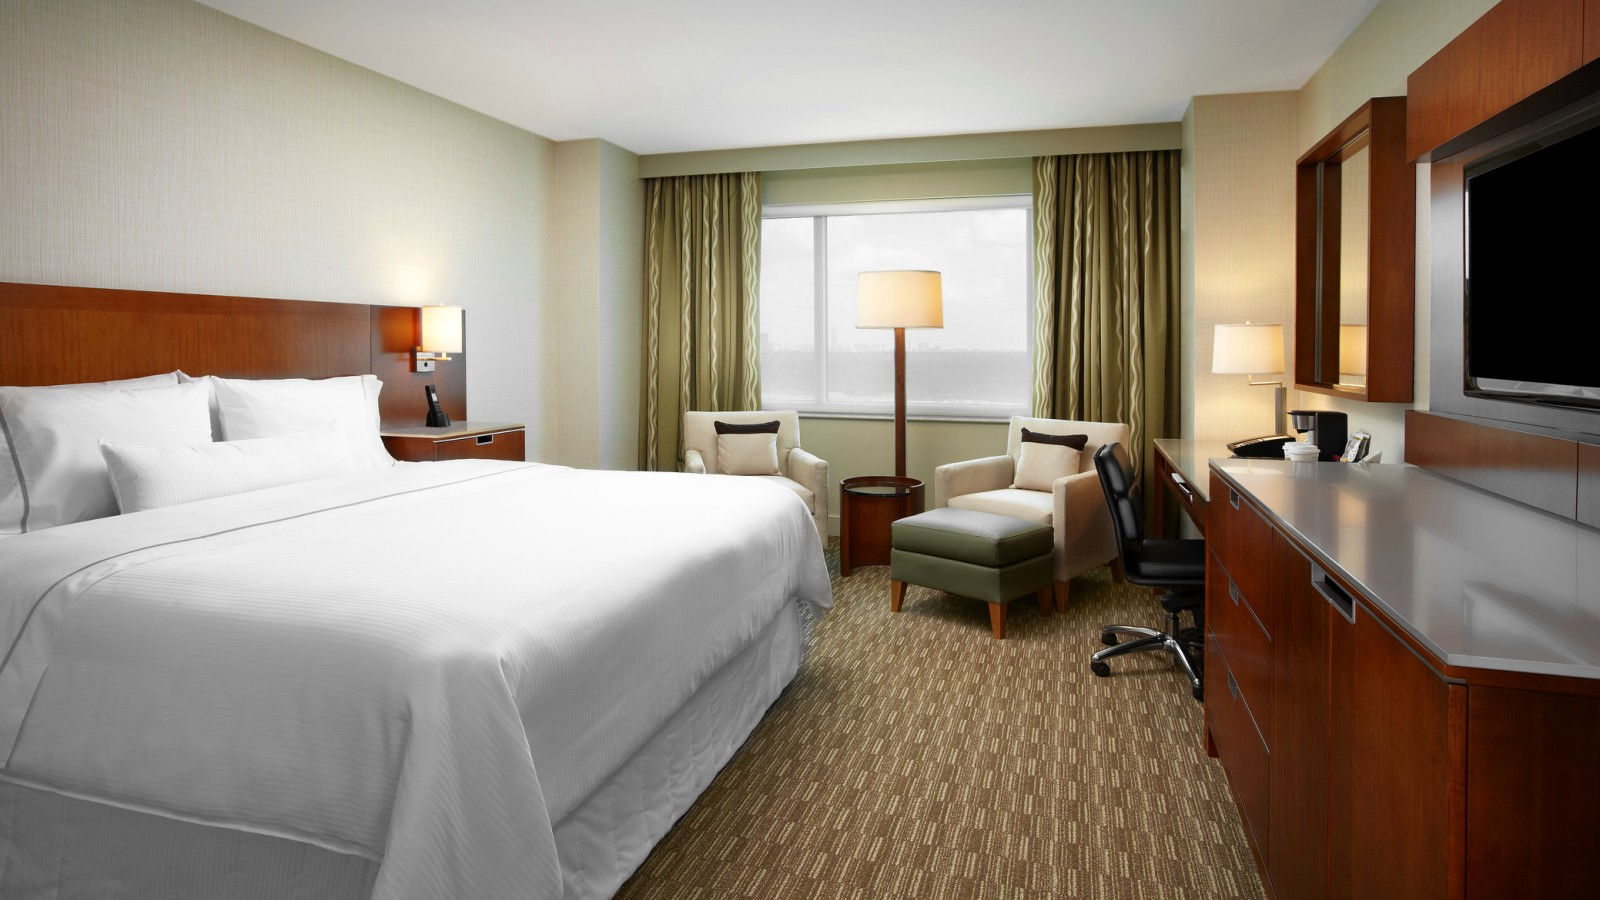 A Traditional Room at The Westin Houston, Memorial City.